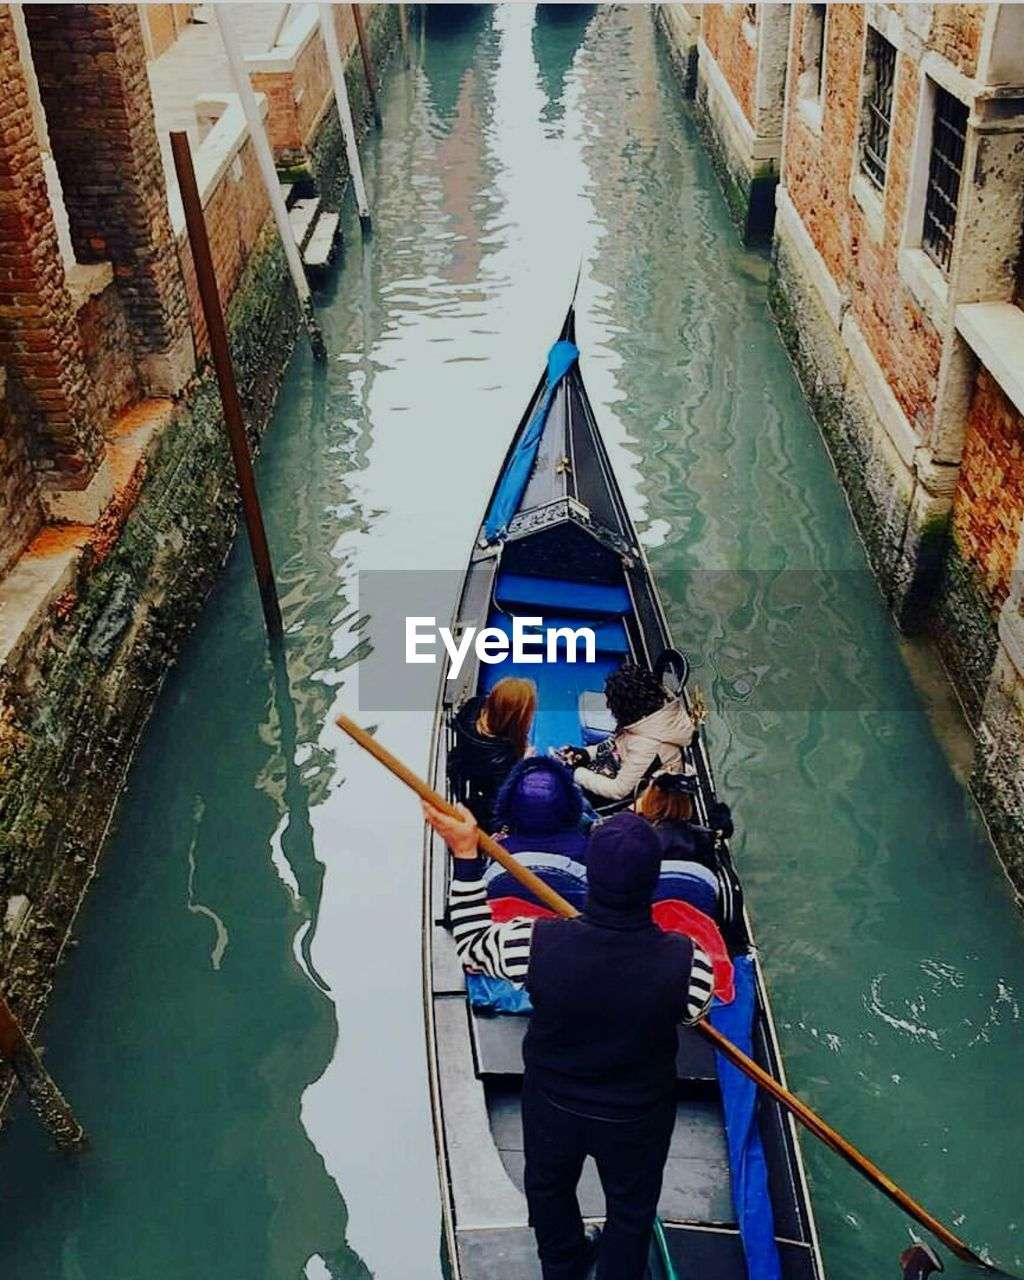 gondola - traditional boat, canal, high angle view, nautical vessel, gondolier, real people, water, gondola, transportation, rear view, men, oar, rowing, day, architecture, standing, outdoors, togetherness, two people, women, travel destinations, built structure, full length, building exterior, nature, adult, people